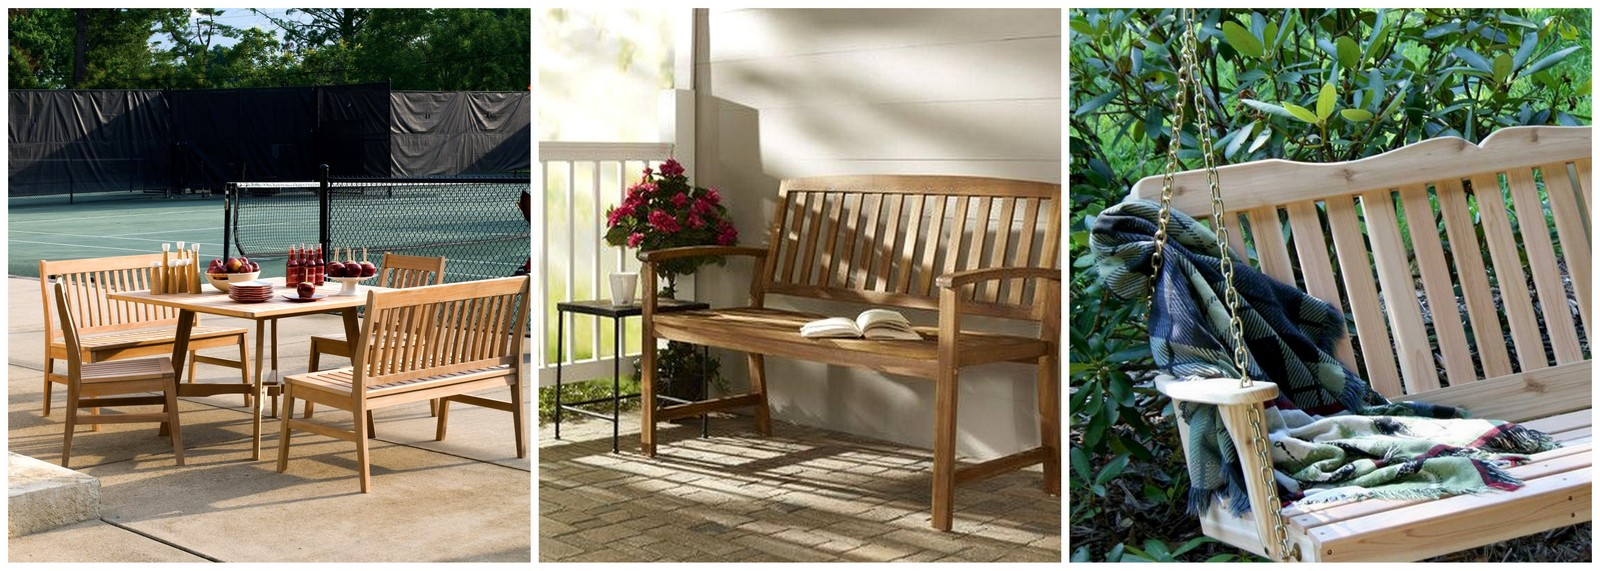 Swell 11 Best Garden Benches Of 2019 Reviewed Homesthetics Lamtechconsult Wood Chair Design Ideas Lamtechconsultcom